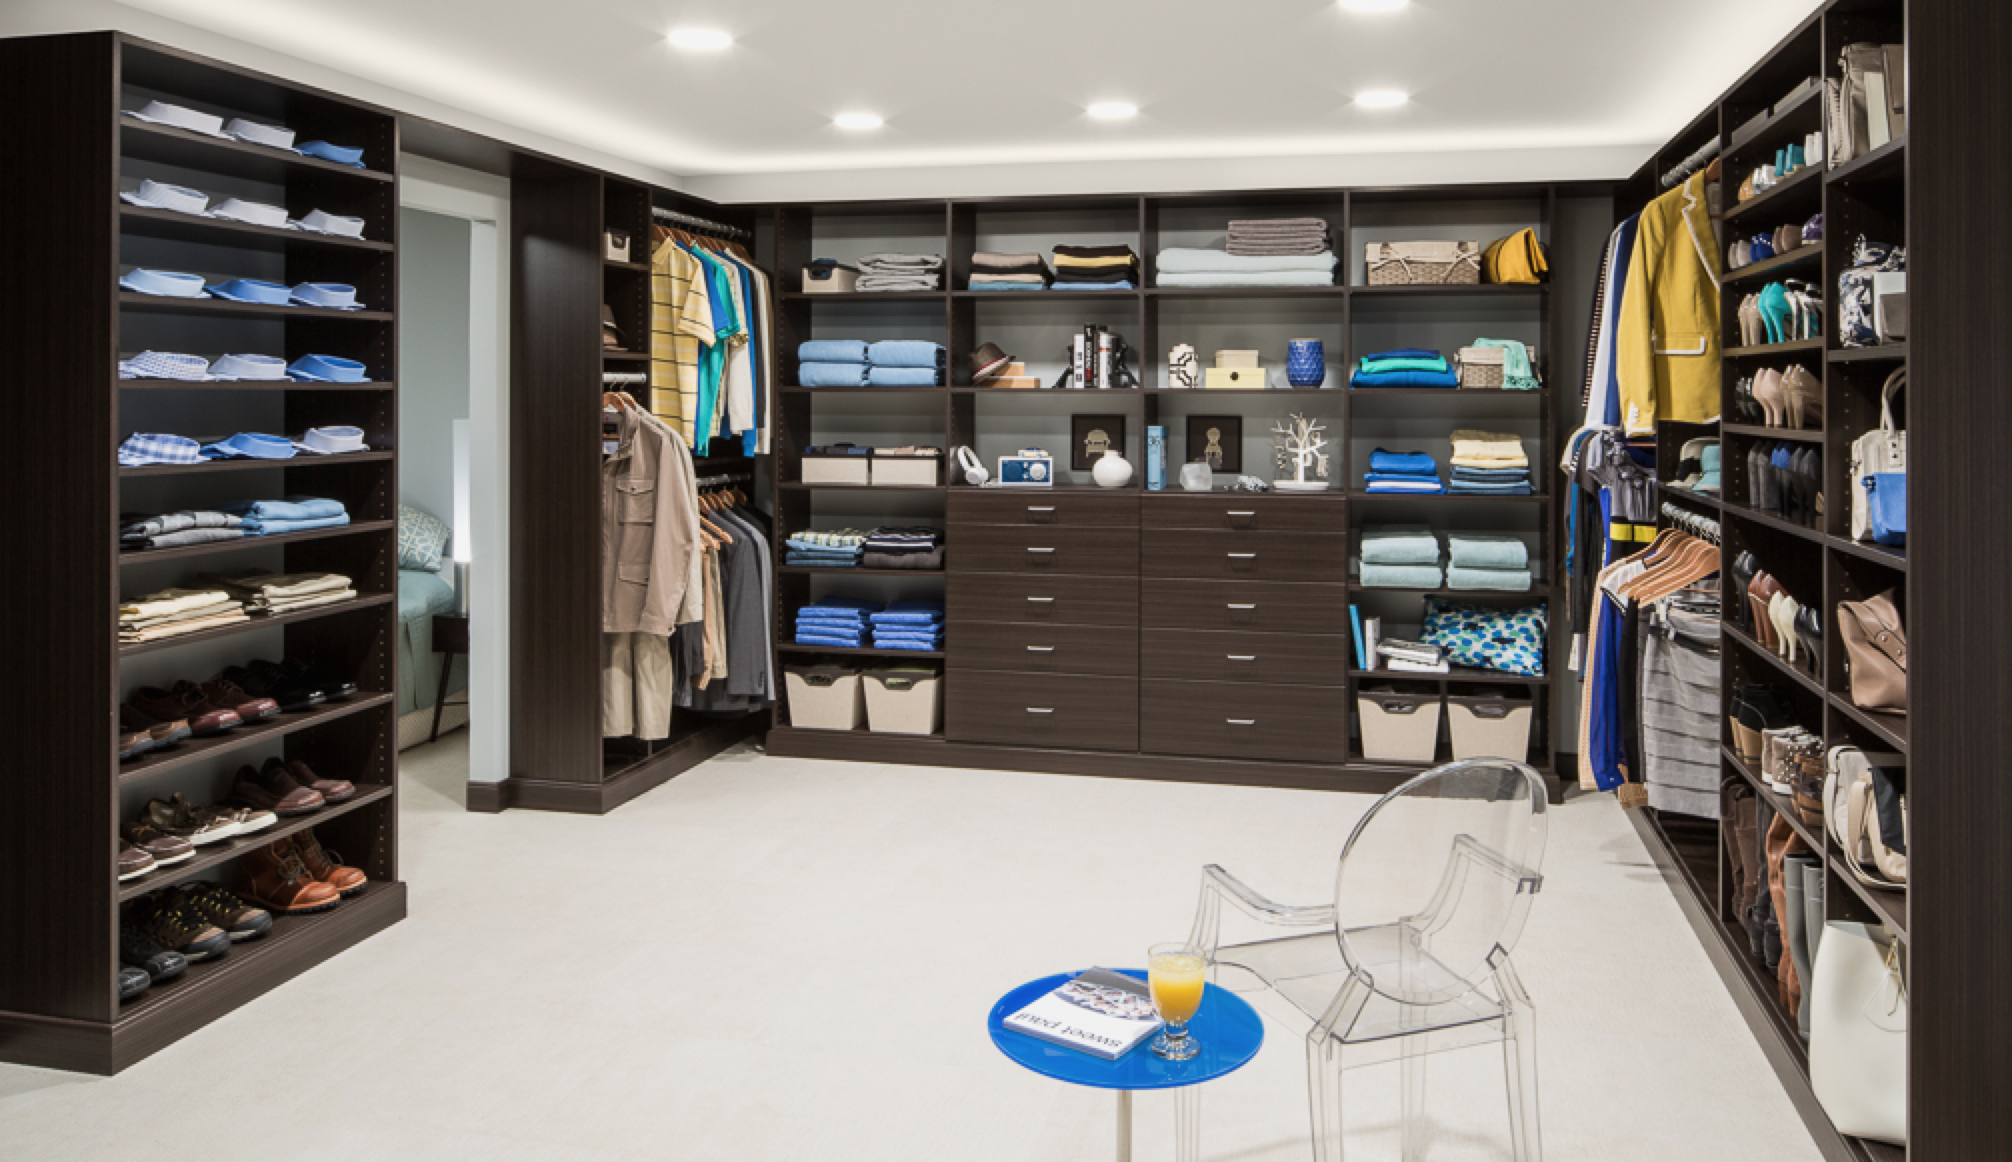 Renovation Series Creating A Dream Closet With Easyclosets 1